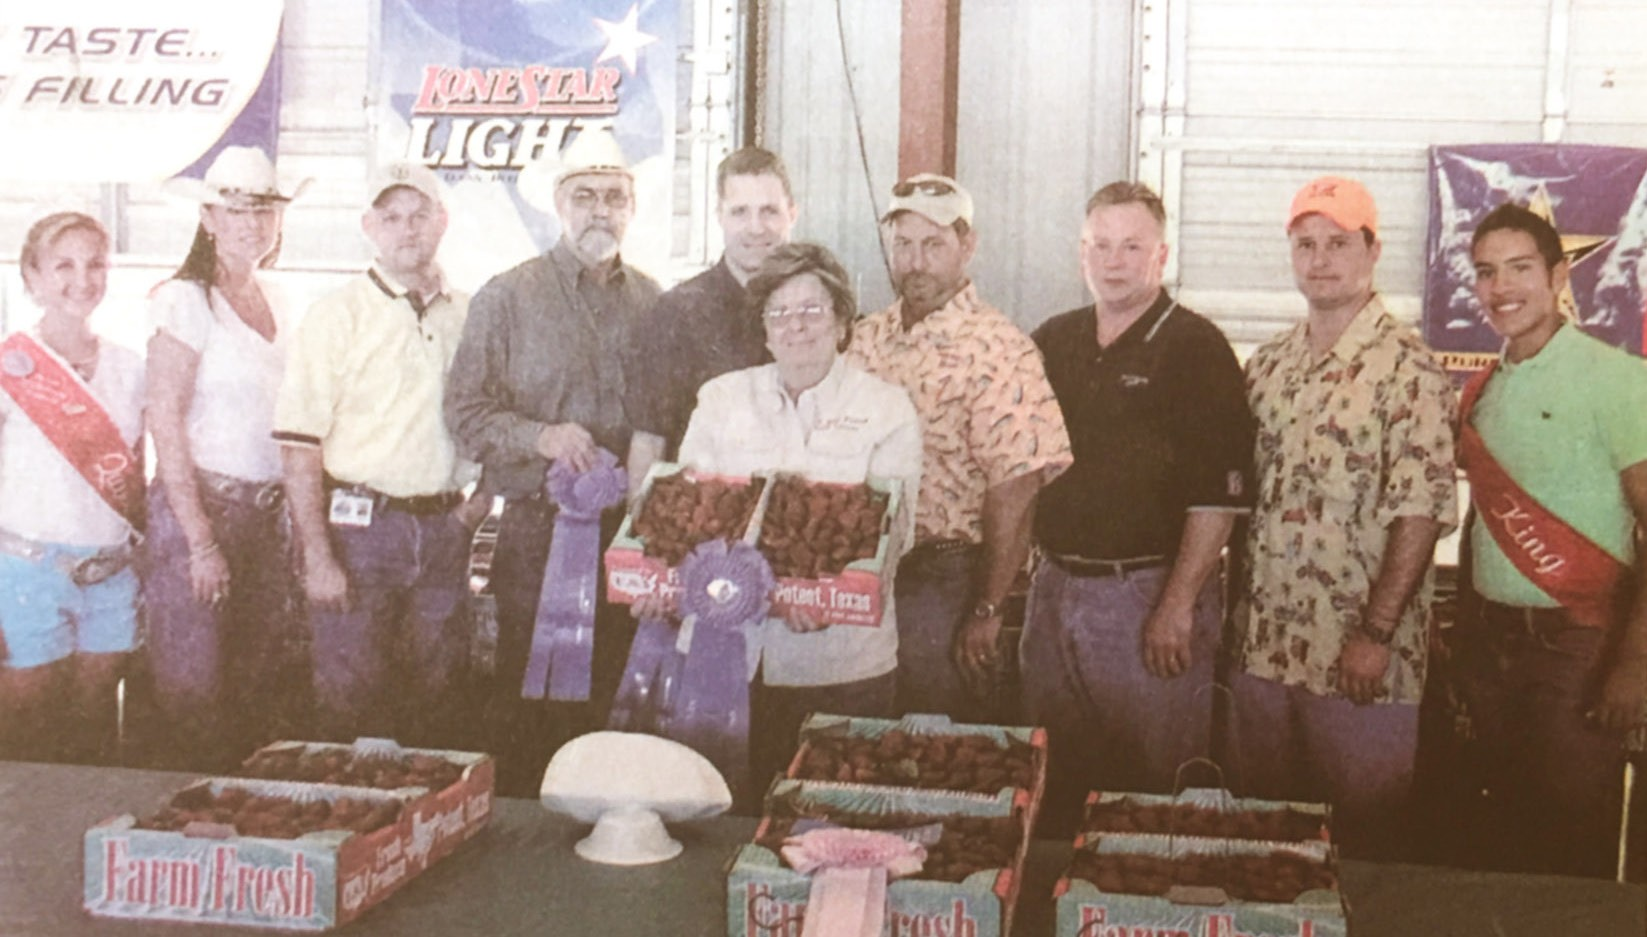 Pictured in her first win - which also happened to be Sweepstake winning Grand and Reserve Grand Champion Strawberries - are Cora (with berries) and left to right, Queen Leata Martinez, Kara Bailey (Lone Star Light), Thomas Johnson (Halo Distributing), Donald Retzloff (American Electric Power), Cory Oiver (H-E-B), Mark Biediger (Pure Party Ice), Jerry Brown (Budweiser), Kenny Stewart (Halo Distributing) and King Jake Olivares.